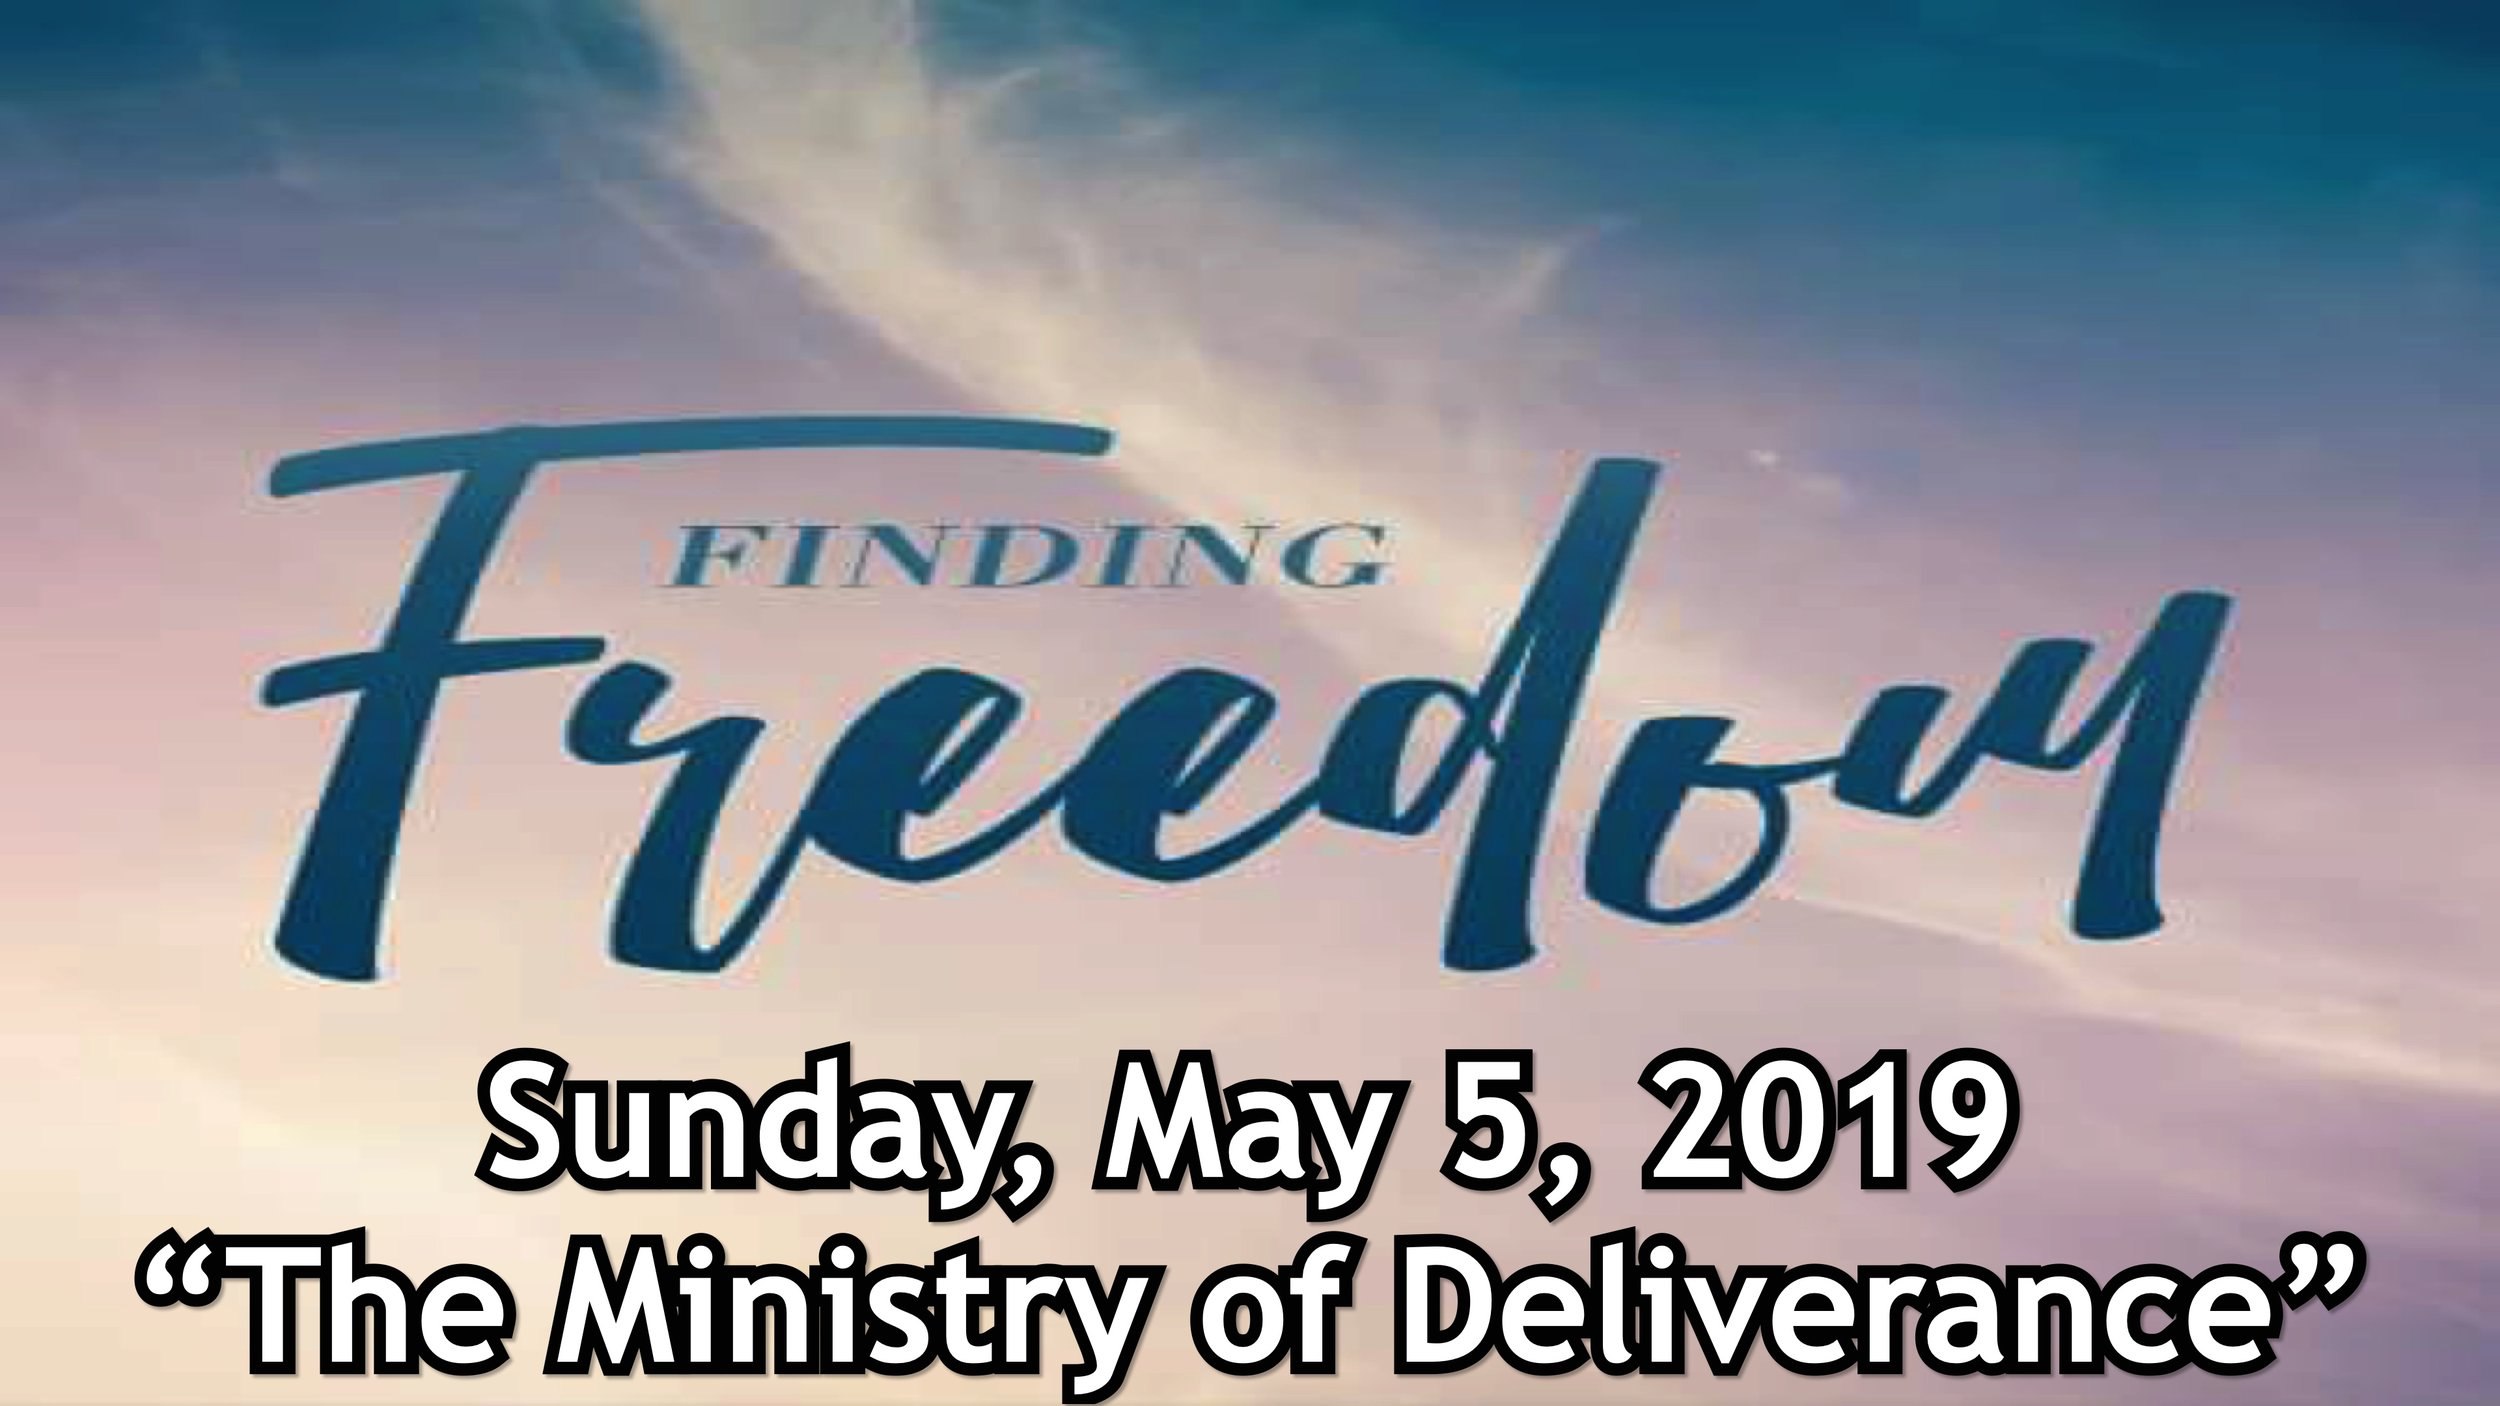 Finding Freedom Part 2: The Ministry of Deliverance